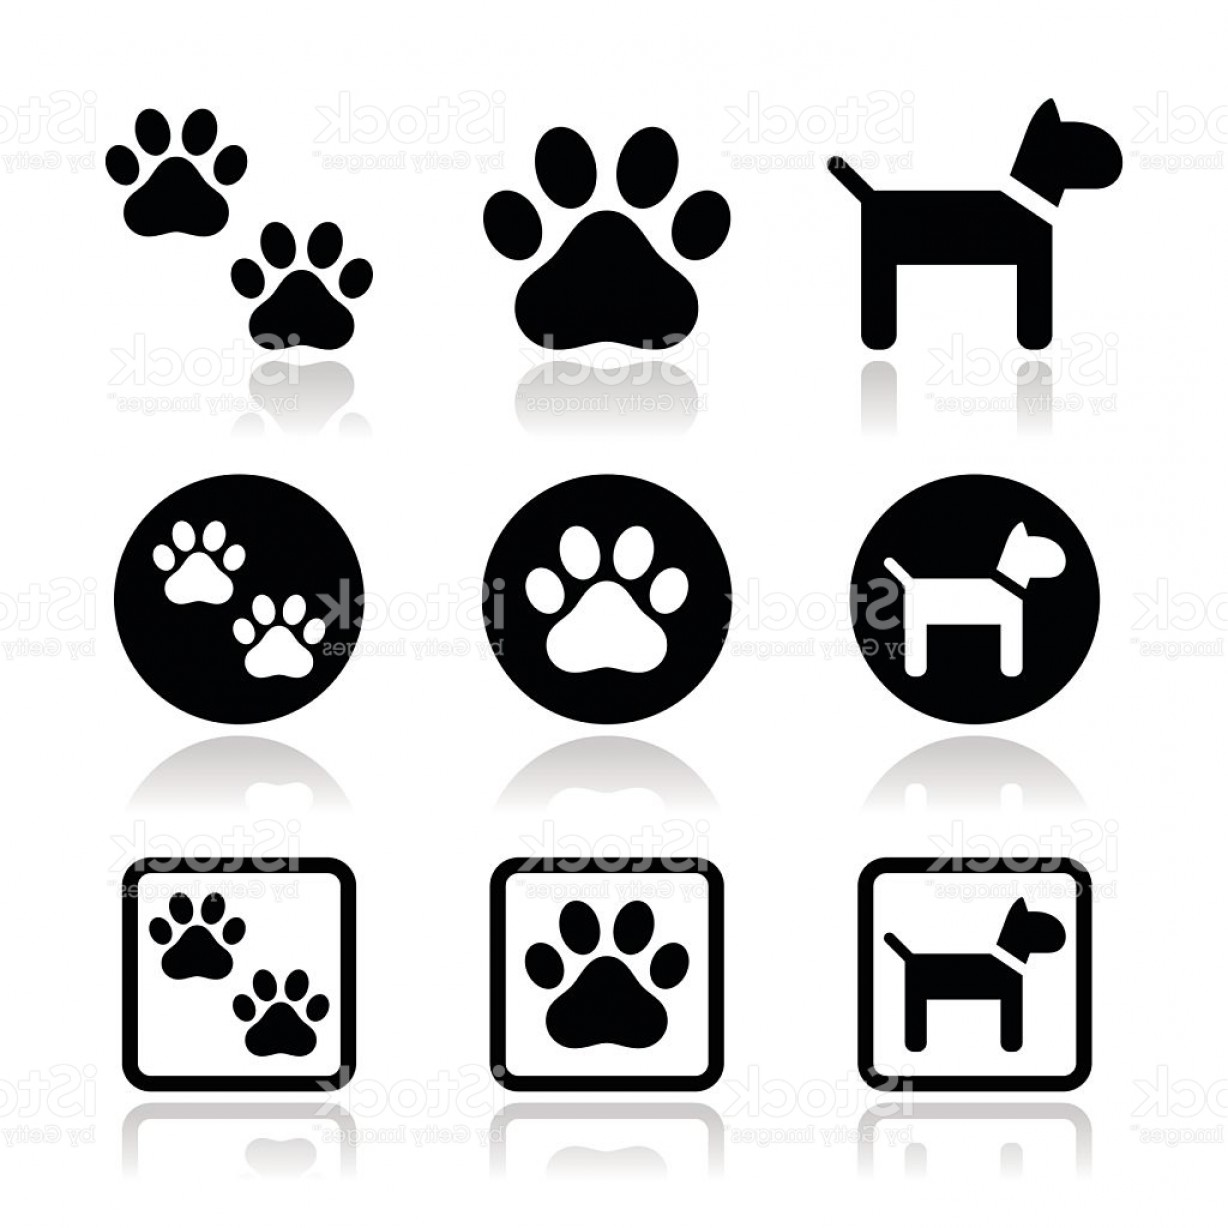 Dog Print Vector at GetDrawings com | Free for personal use